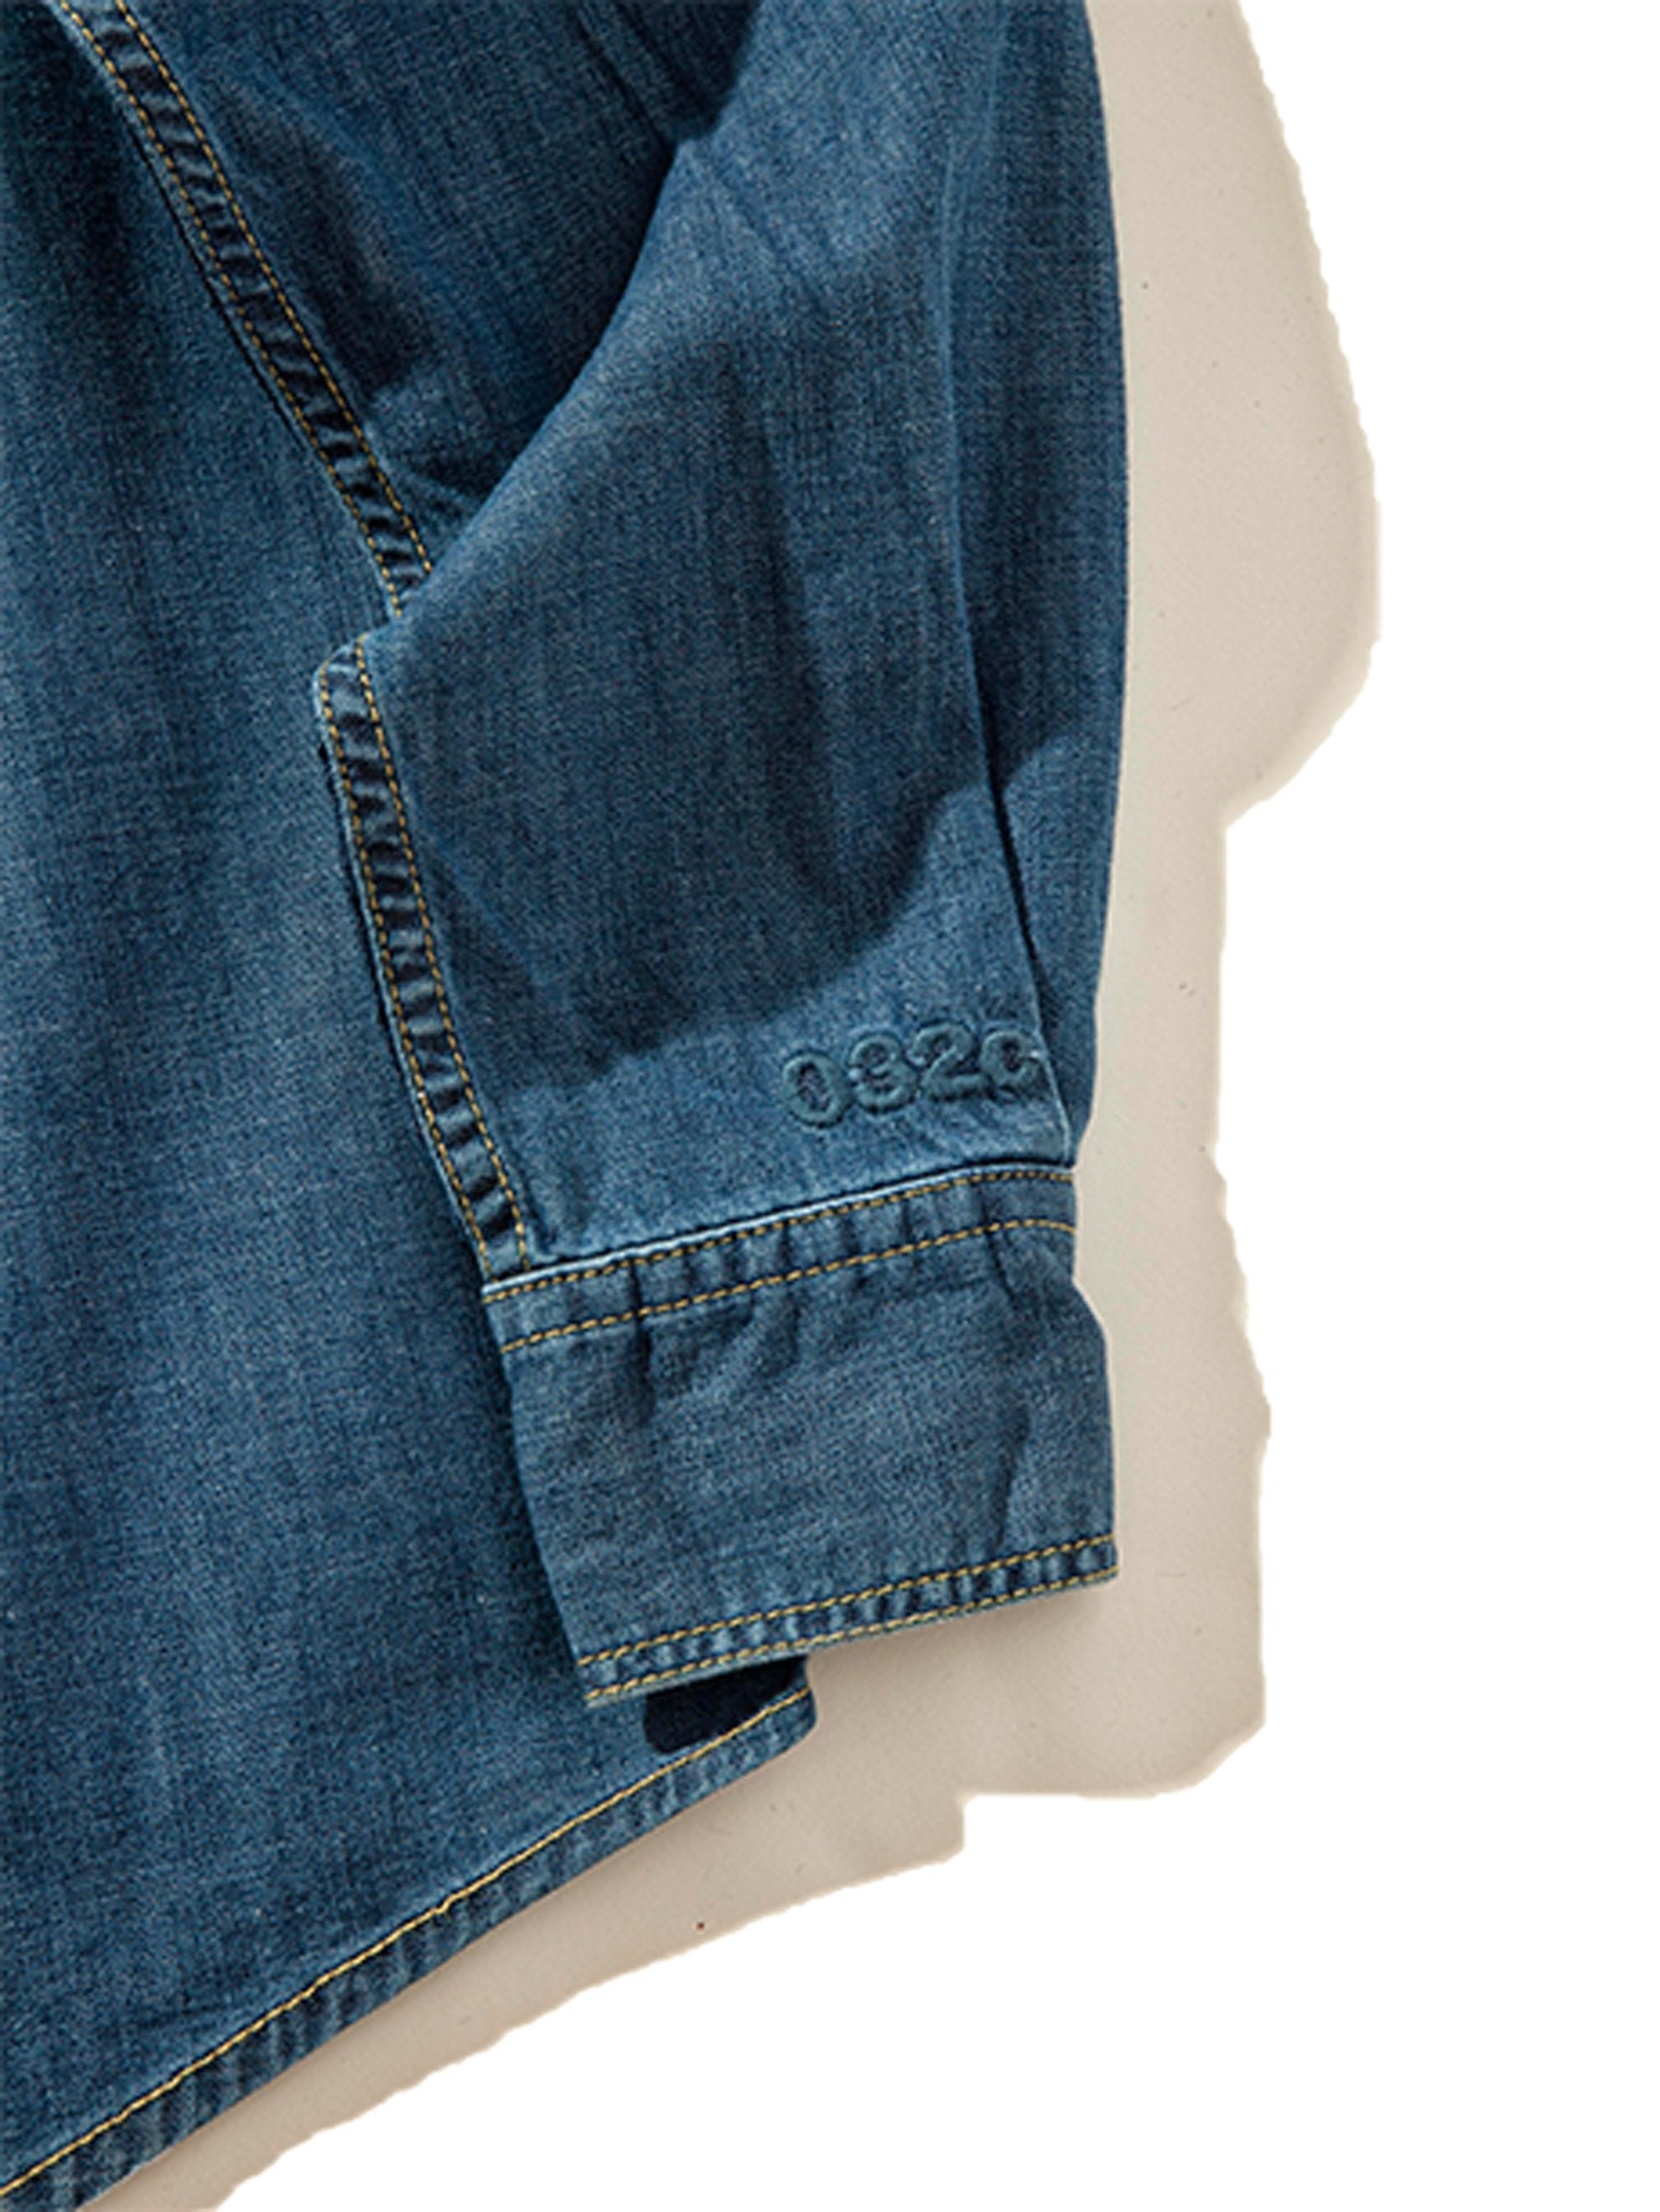 XL Smoker's Collection Jean Shirt 7